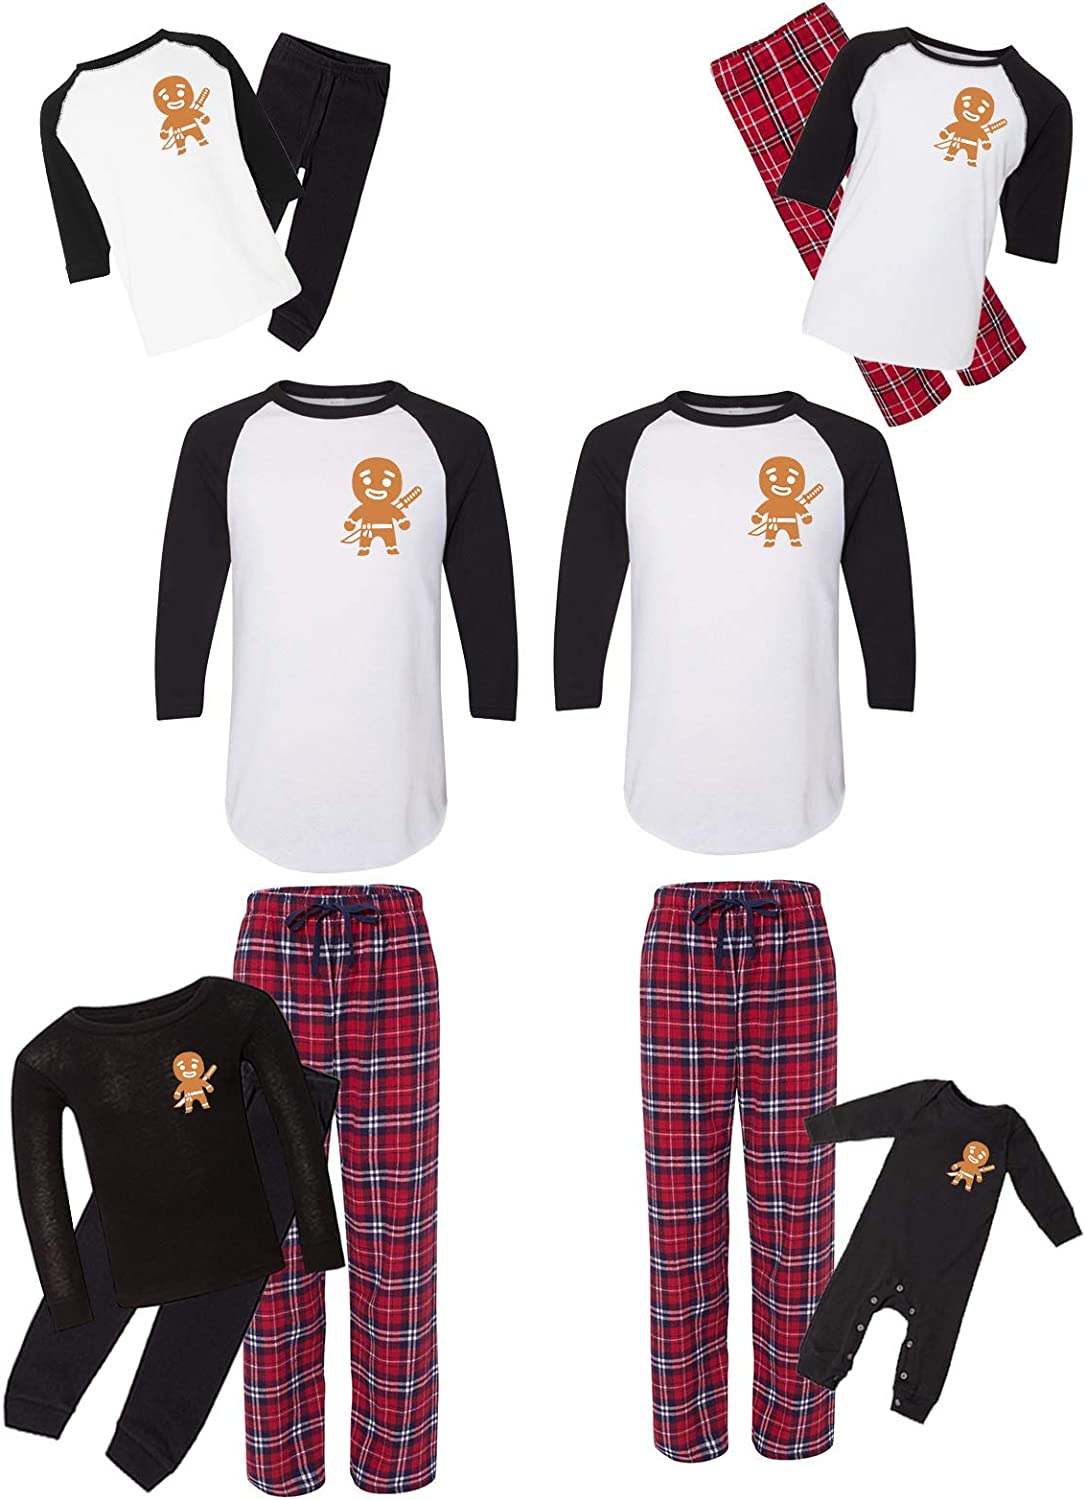 Awkward Styles Elegant Matching Christmas Pajamas Gingerbr Funny Red Special price for a limited time Set